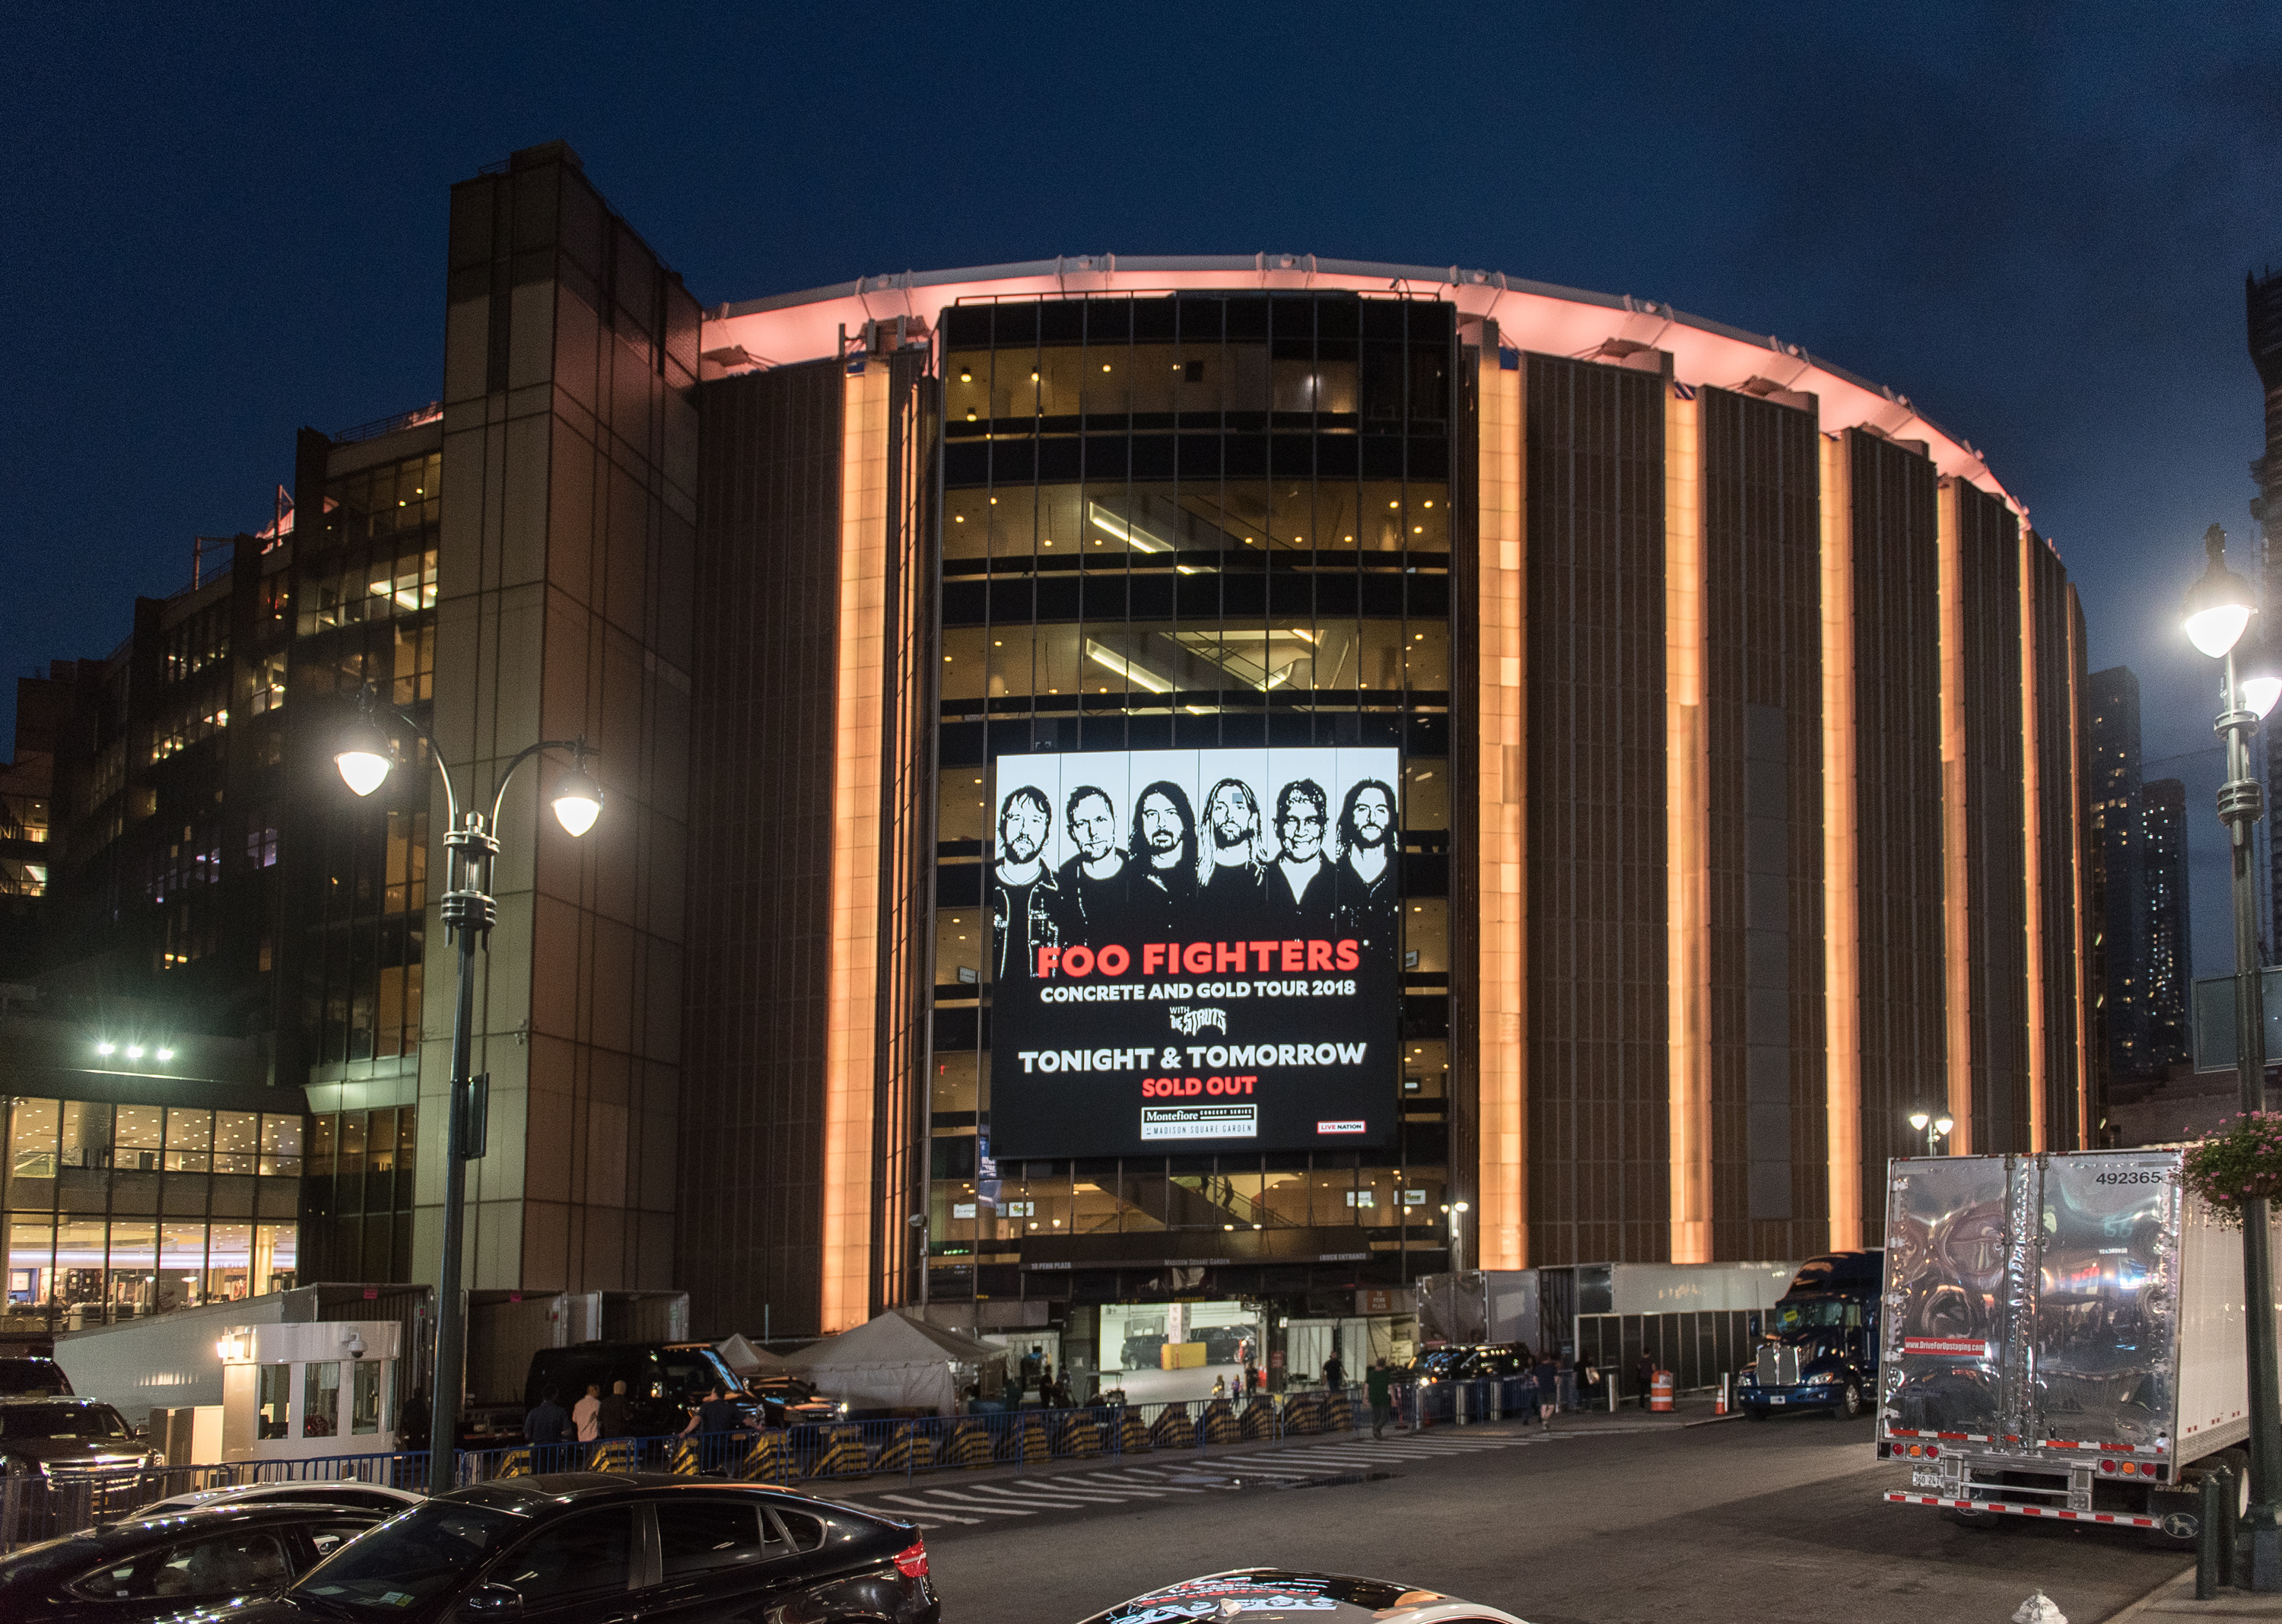 Foo Fighters And The Struts In Concert - New York City